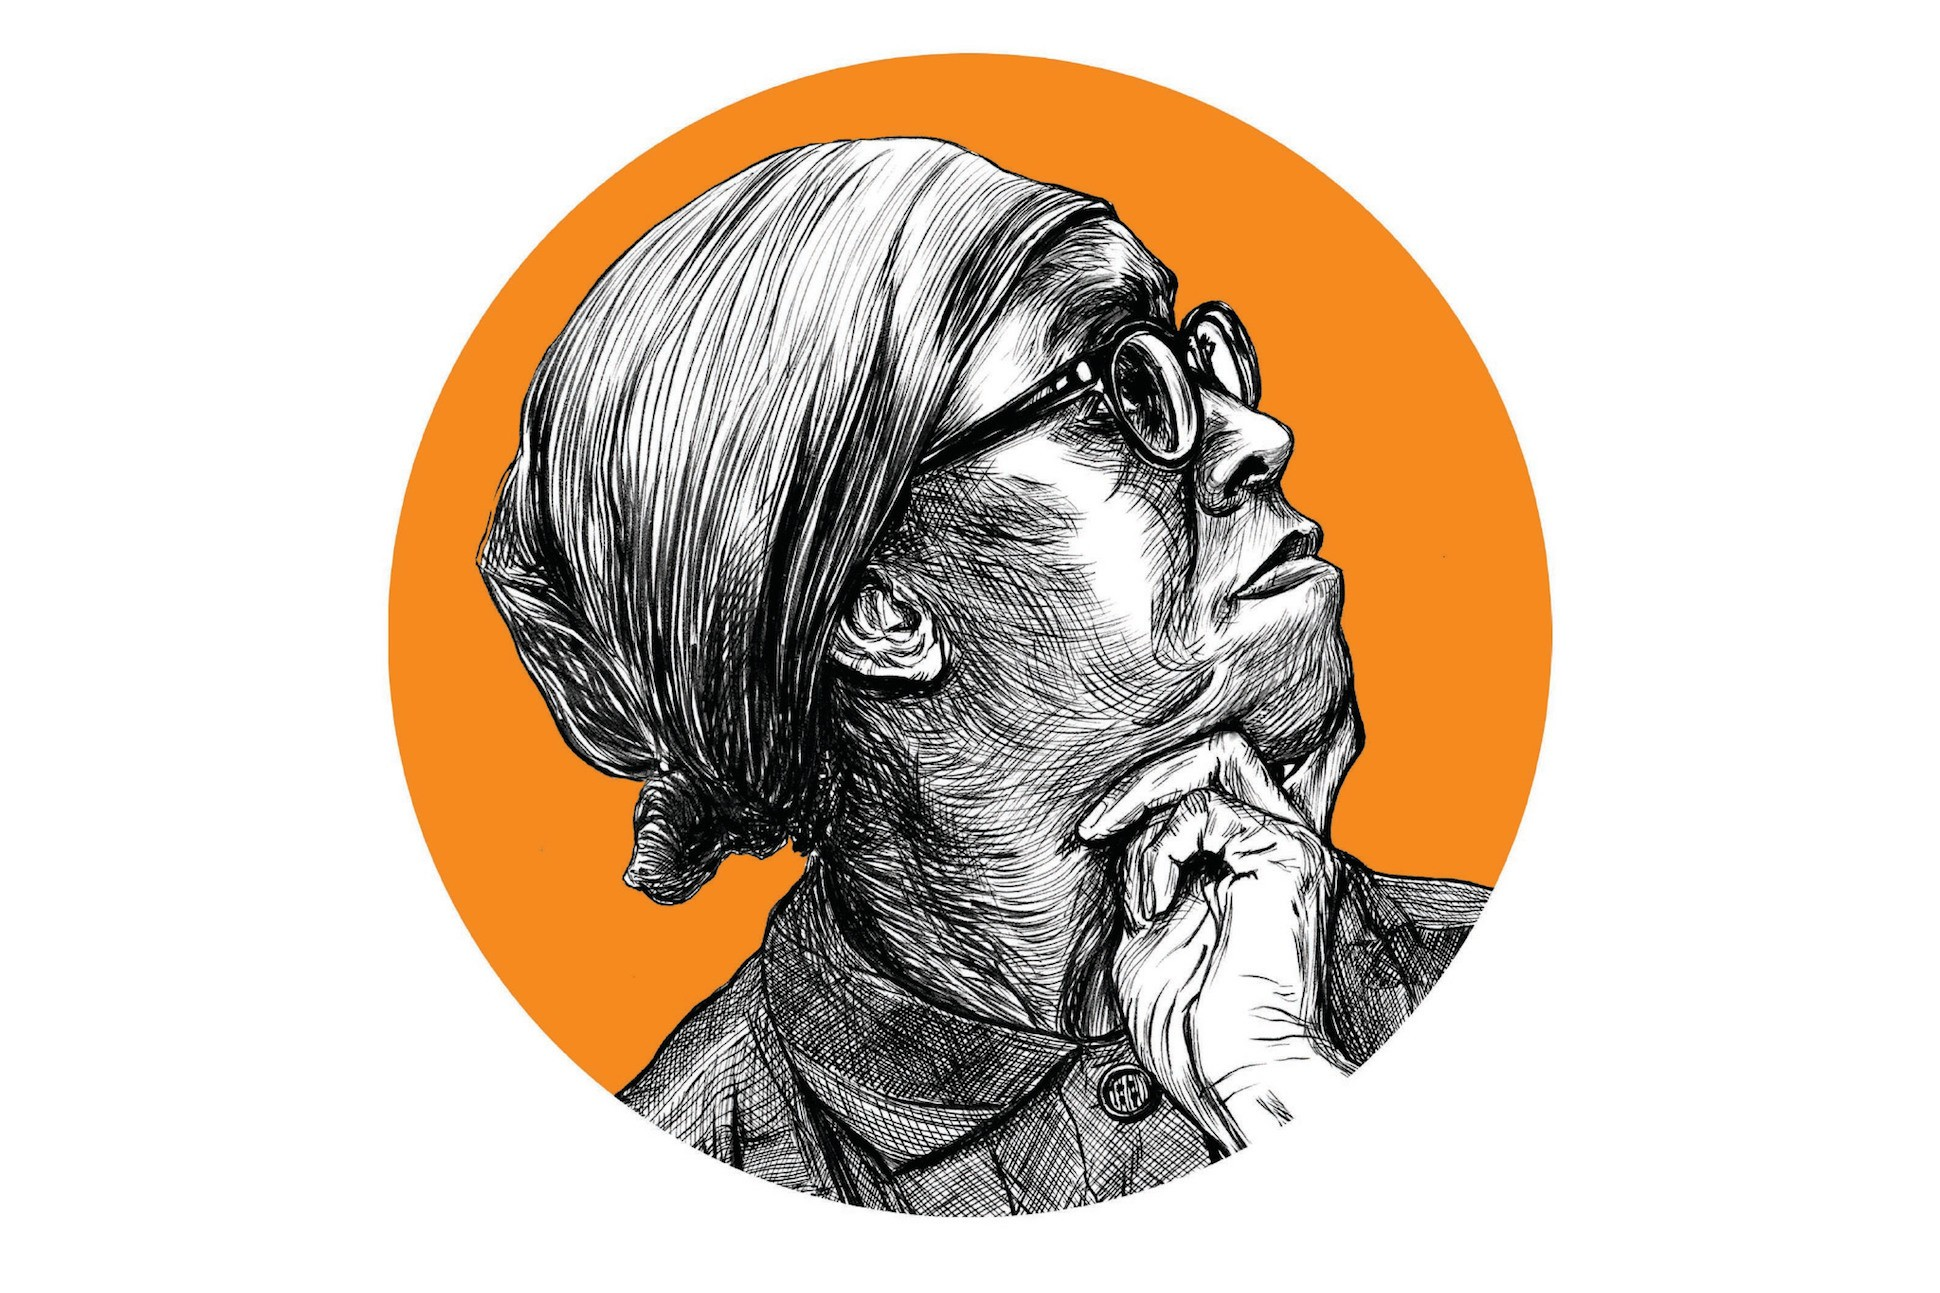 Sketch of Gwendolyn Brooks